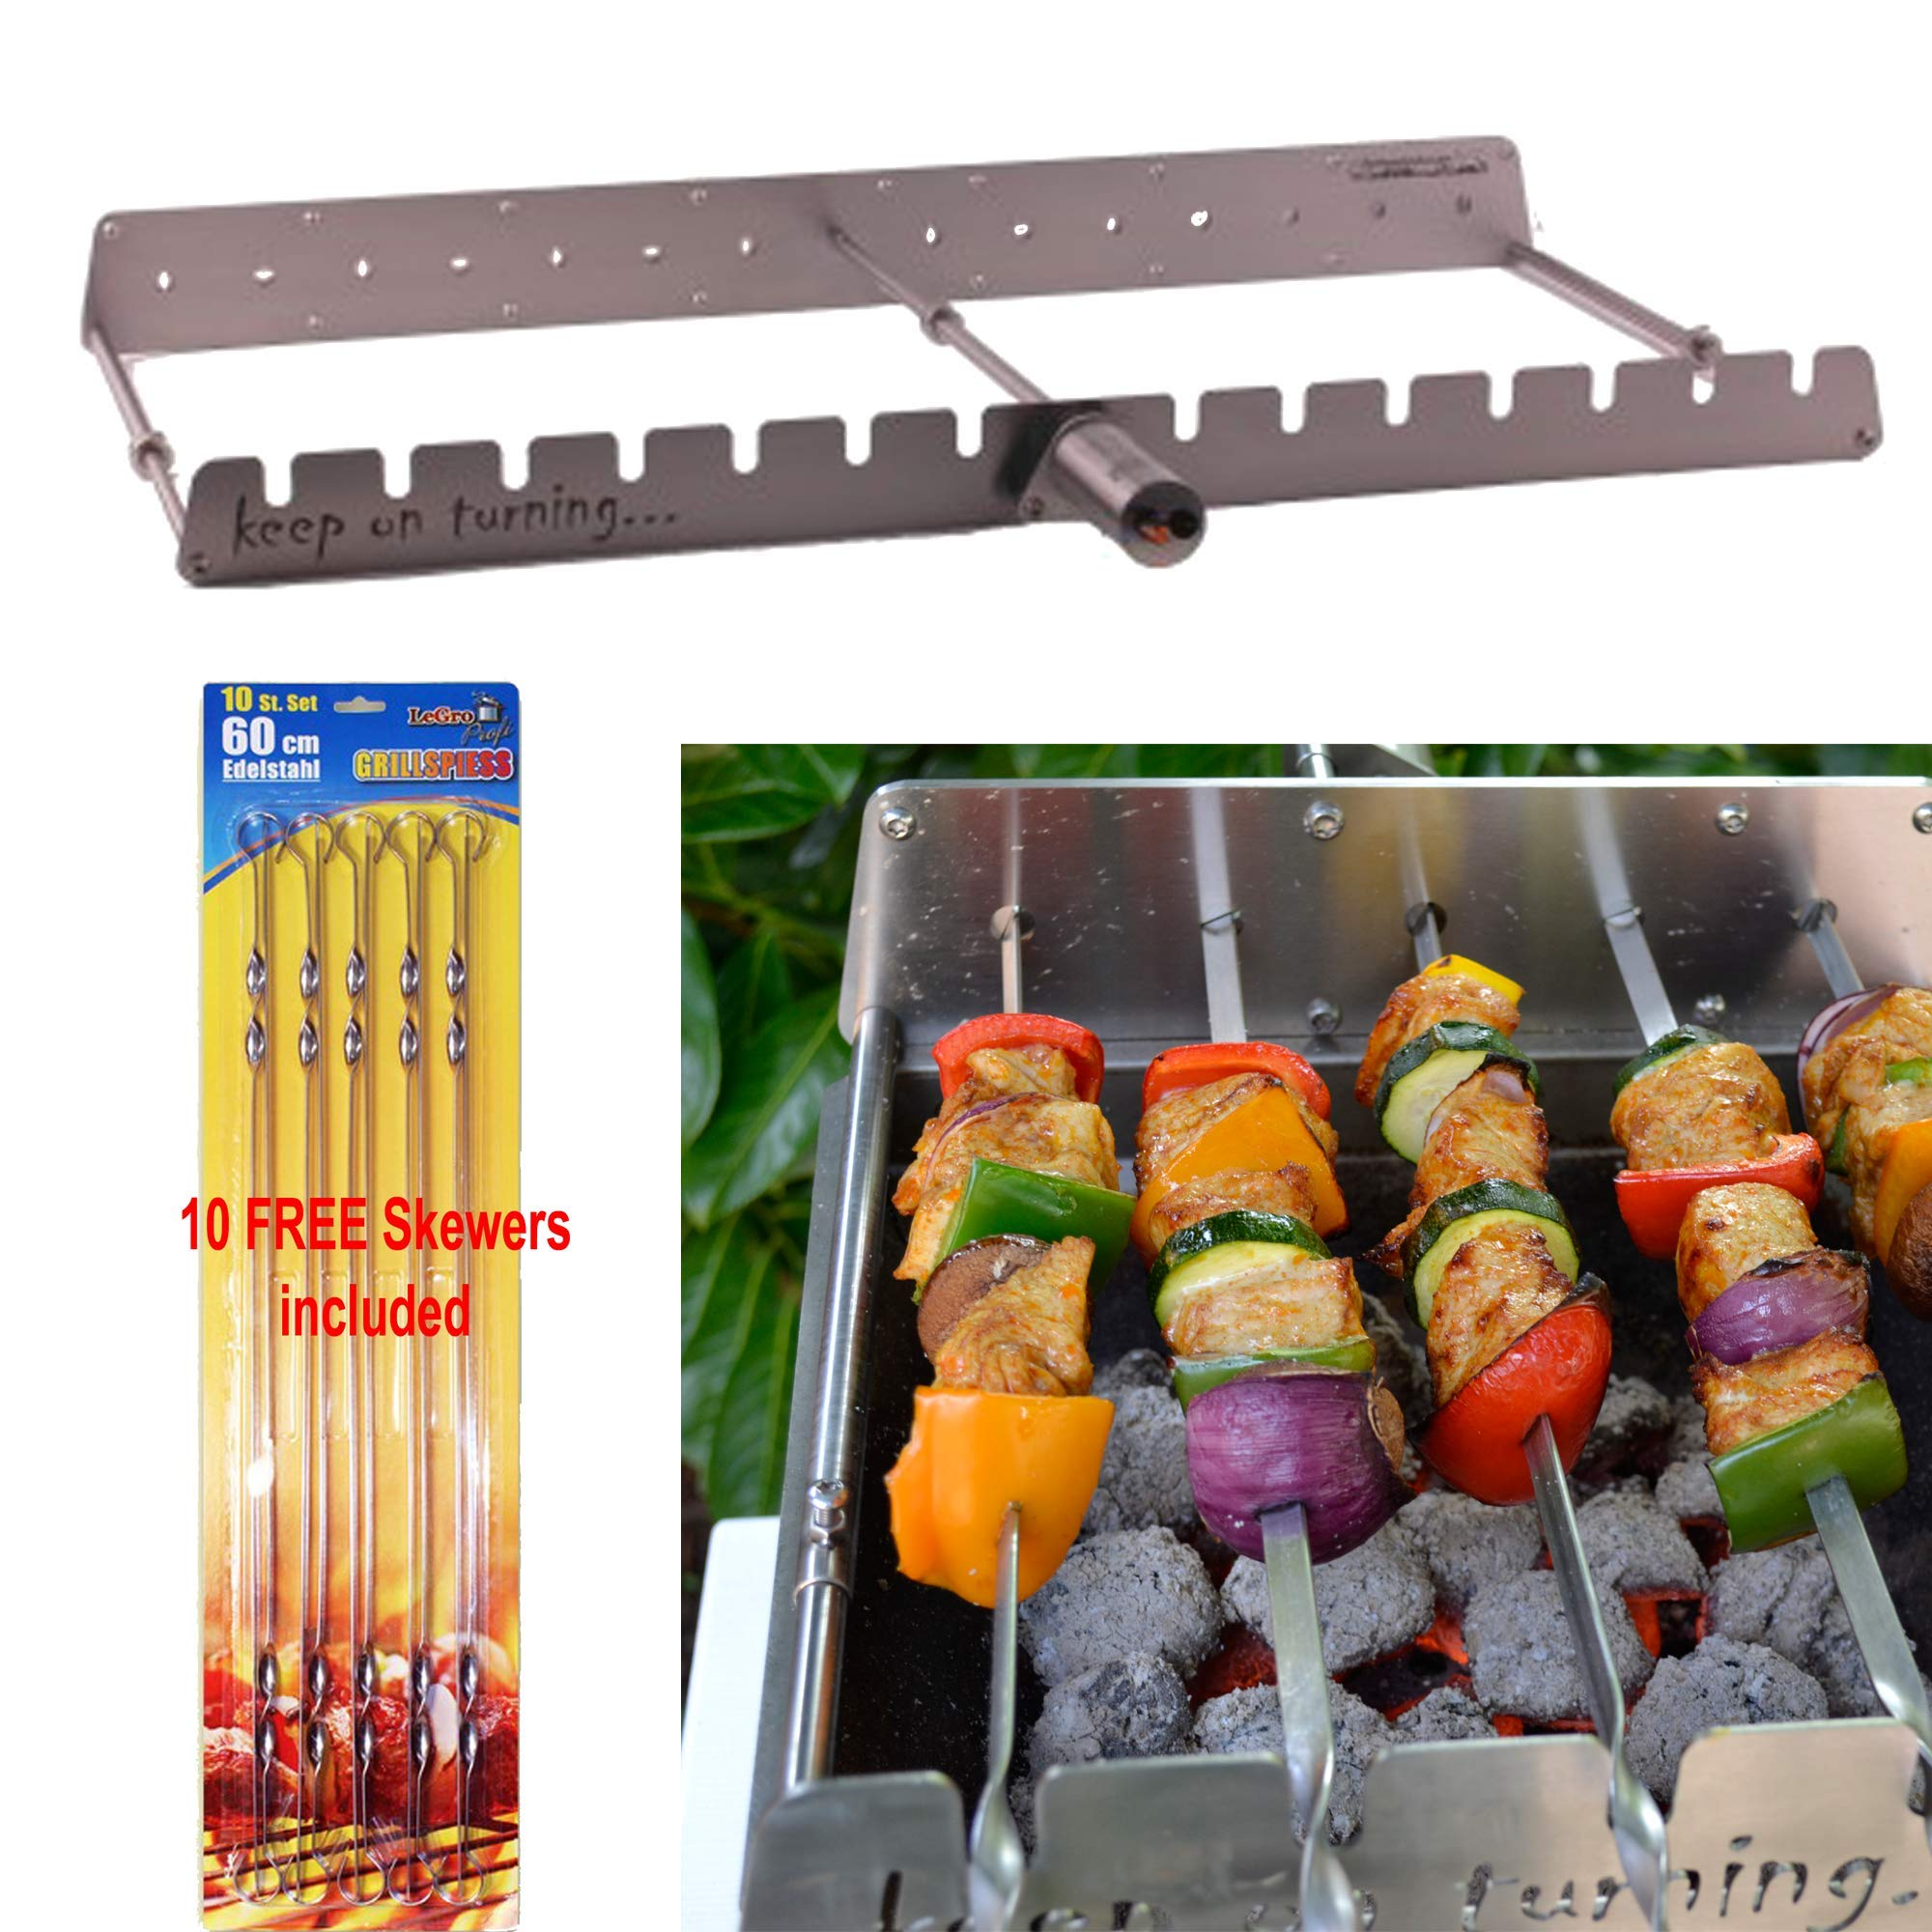 Keep on Turning 14 Skewer Kabob Kebab Shish Automatic Rotating Rotisserie Grill Rack Accessory Attachment for Gas Grills Stainless Steel incl. 10 Free Skewers by Keep on Turning (Image #1)